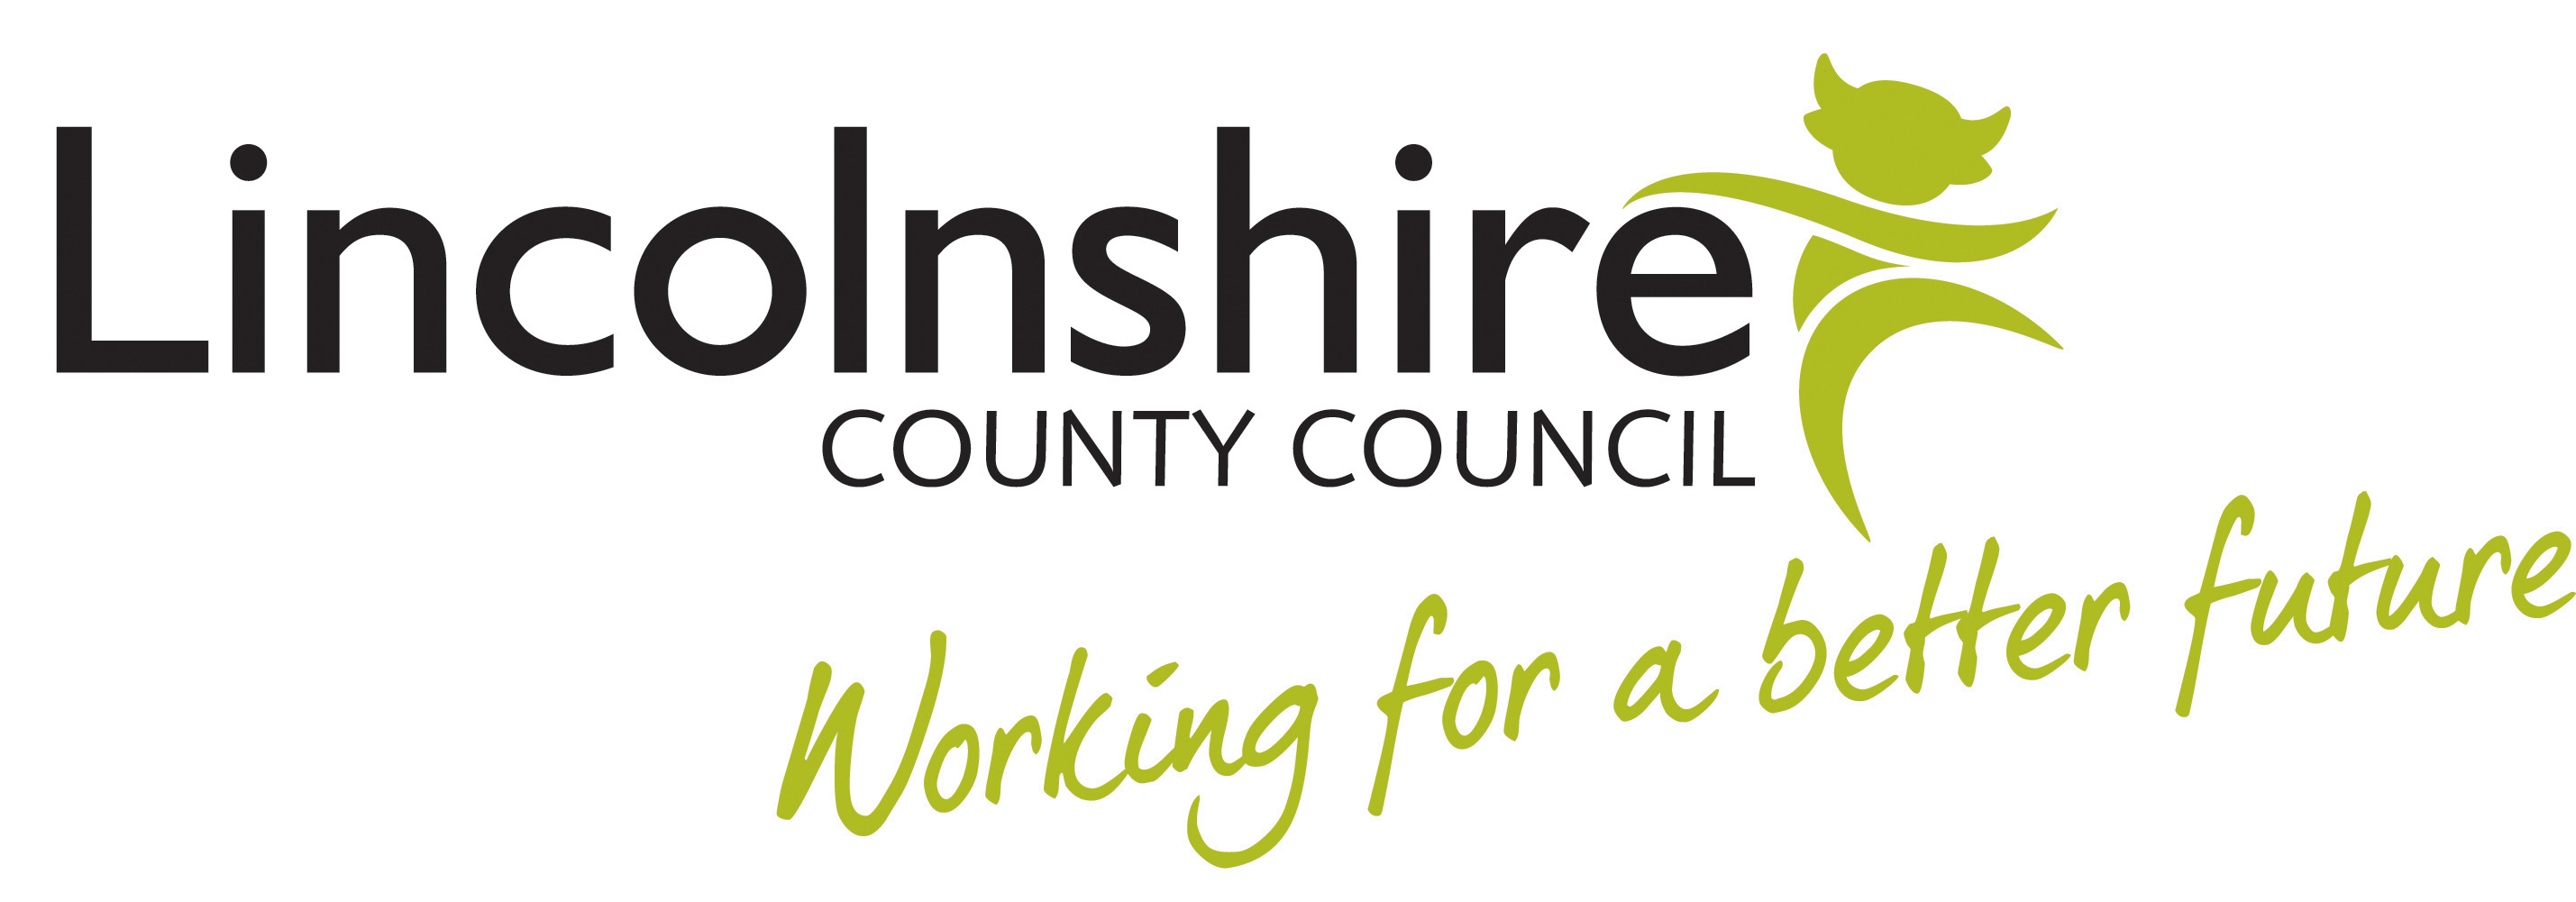 Image result for lincolnshire county council logo